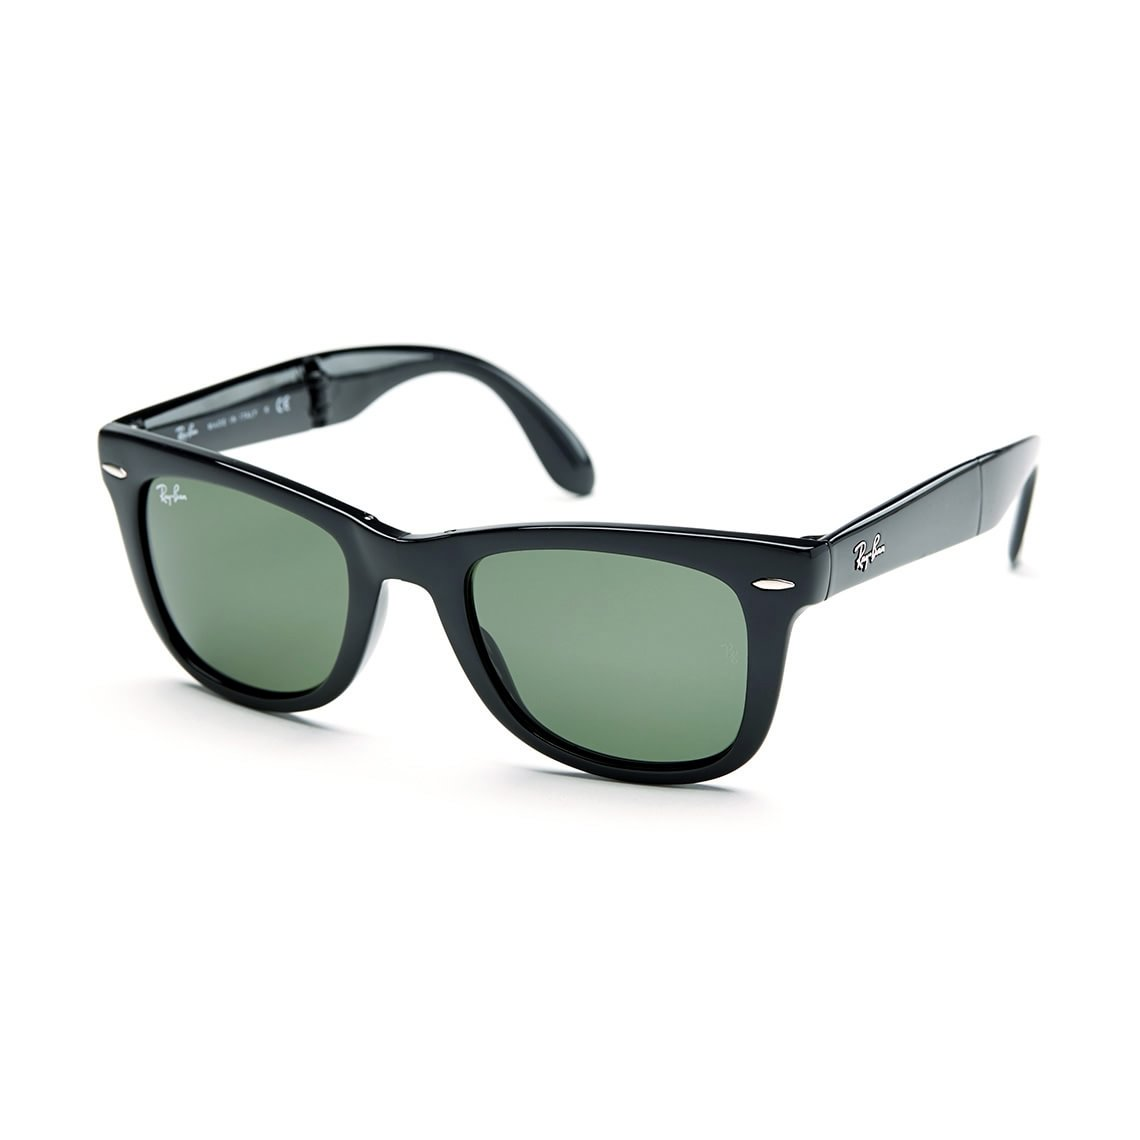 ray ban wayfarer folding  Ray-Ban Wayfarer folding RB4105 601 50 - Synsam